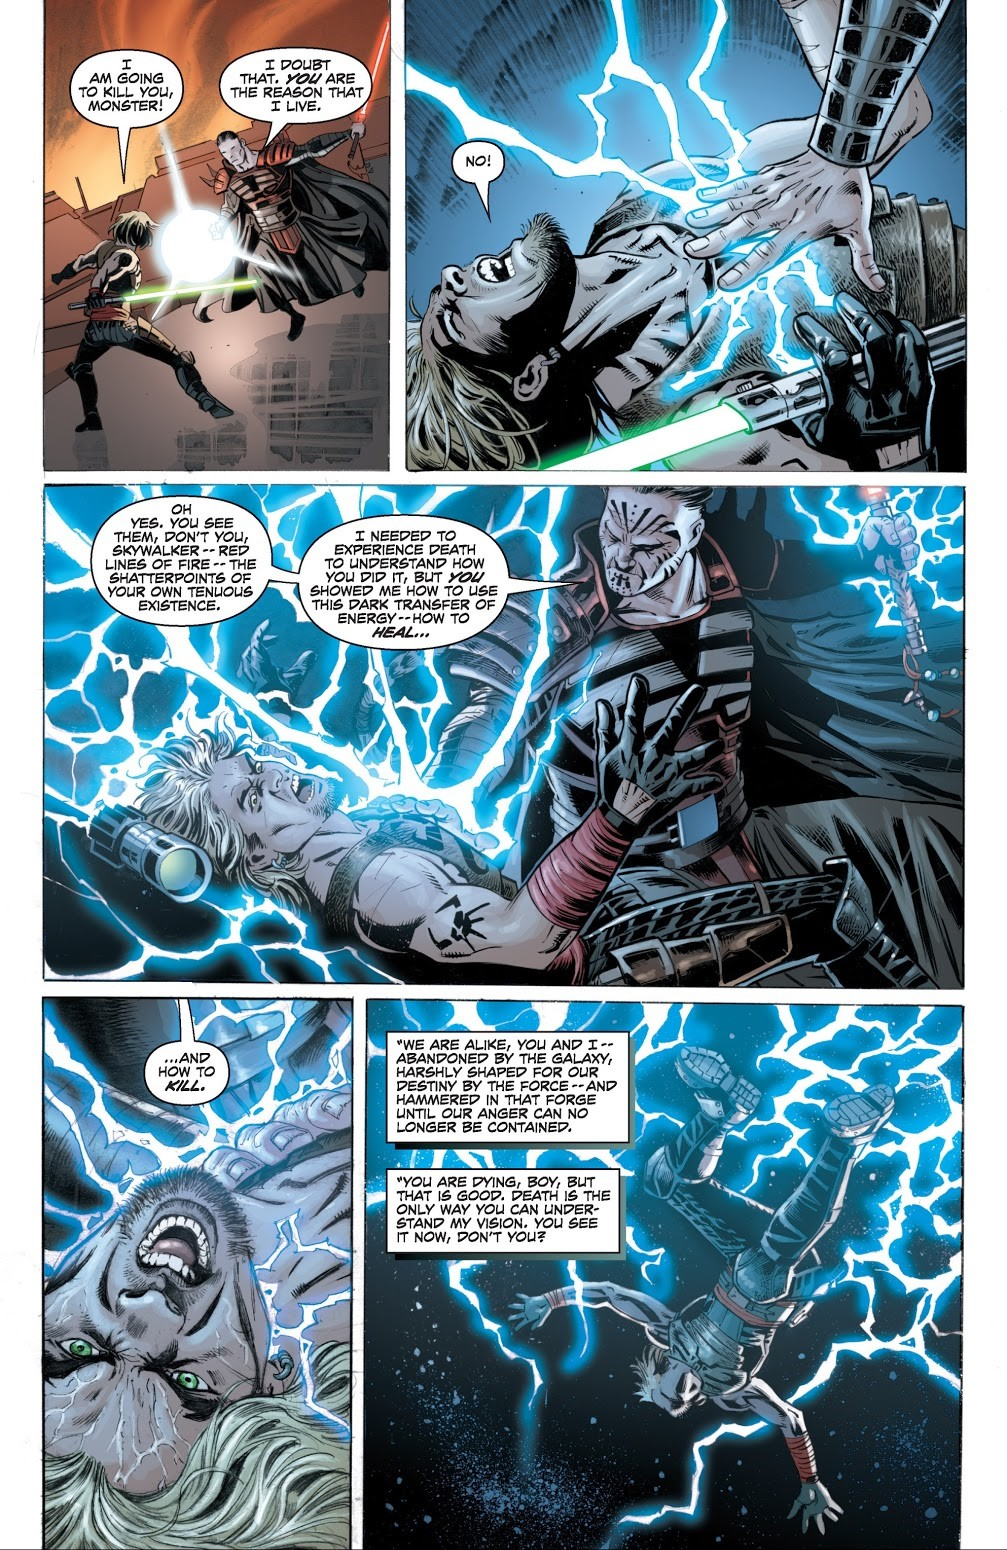 SS - The Tyrannical Ten - Darth Krayt (Azronger) vs Darth Tyranus (ArkhamAsylum3) - Page 6 Krayt_28